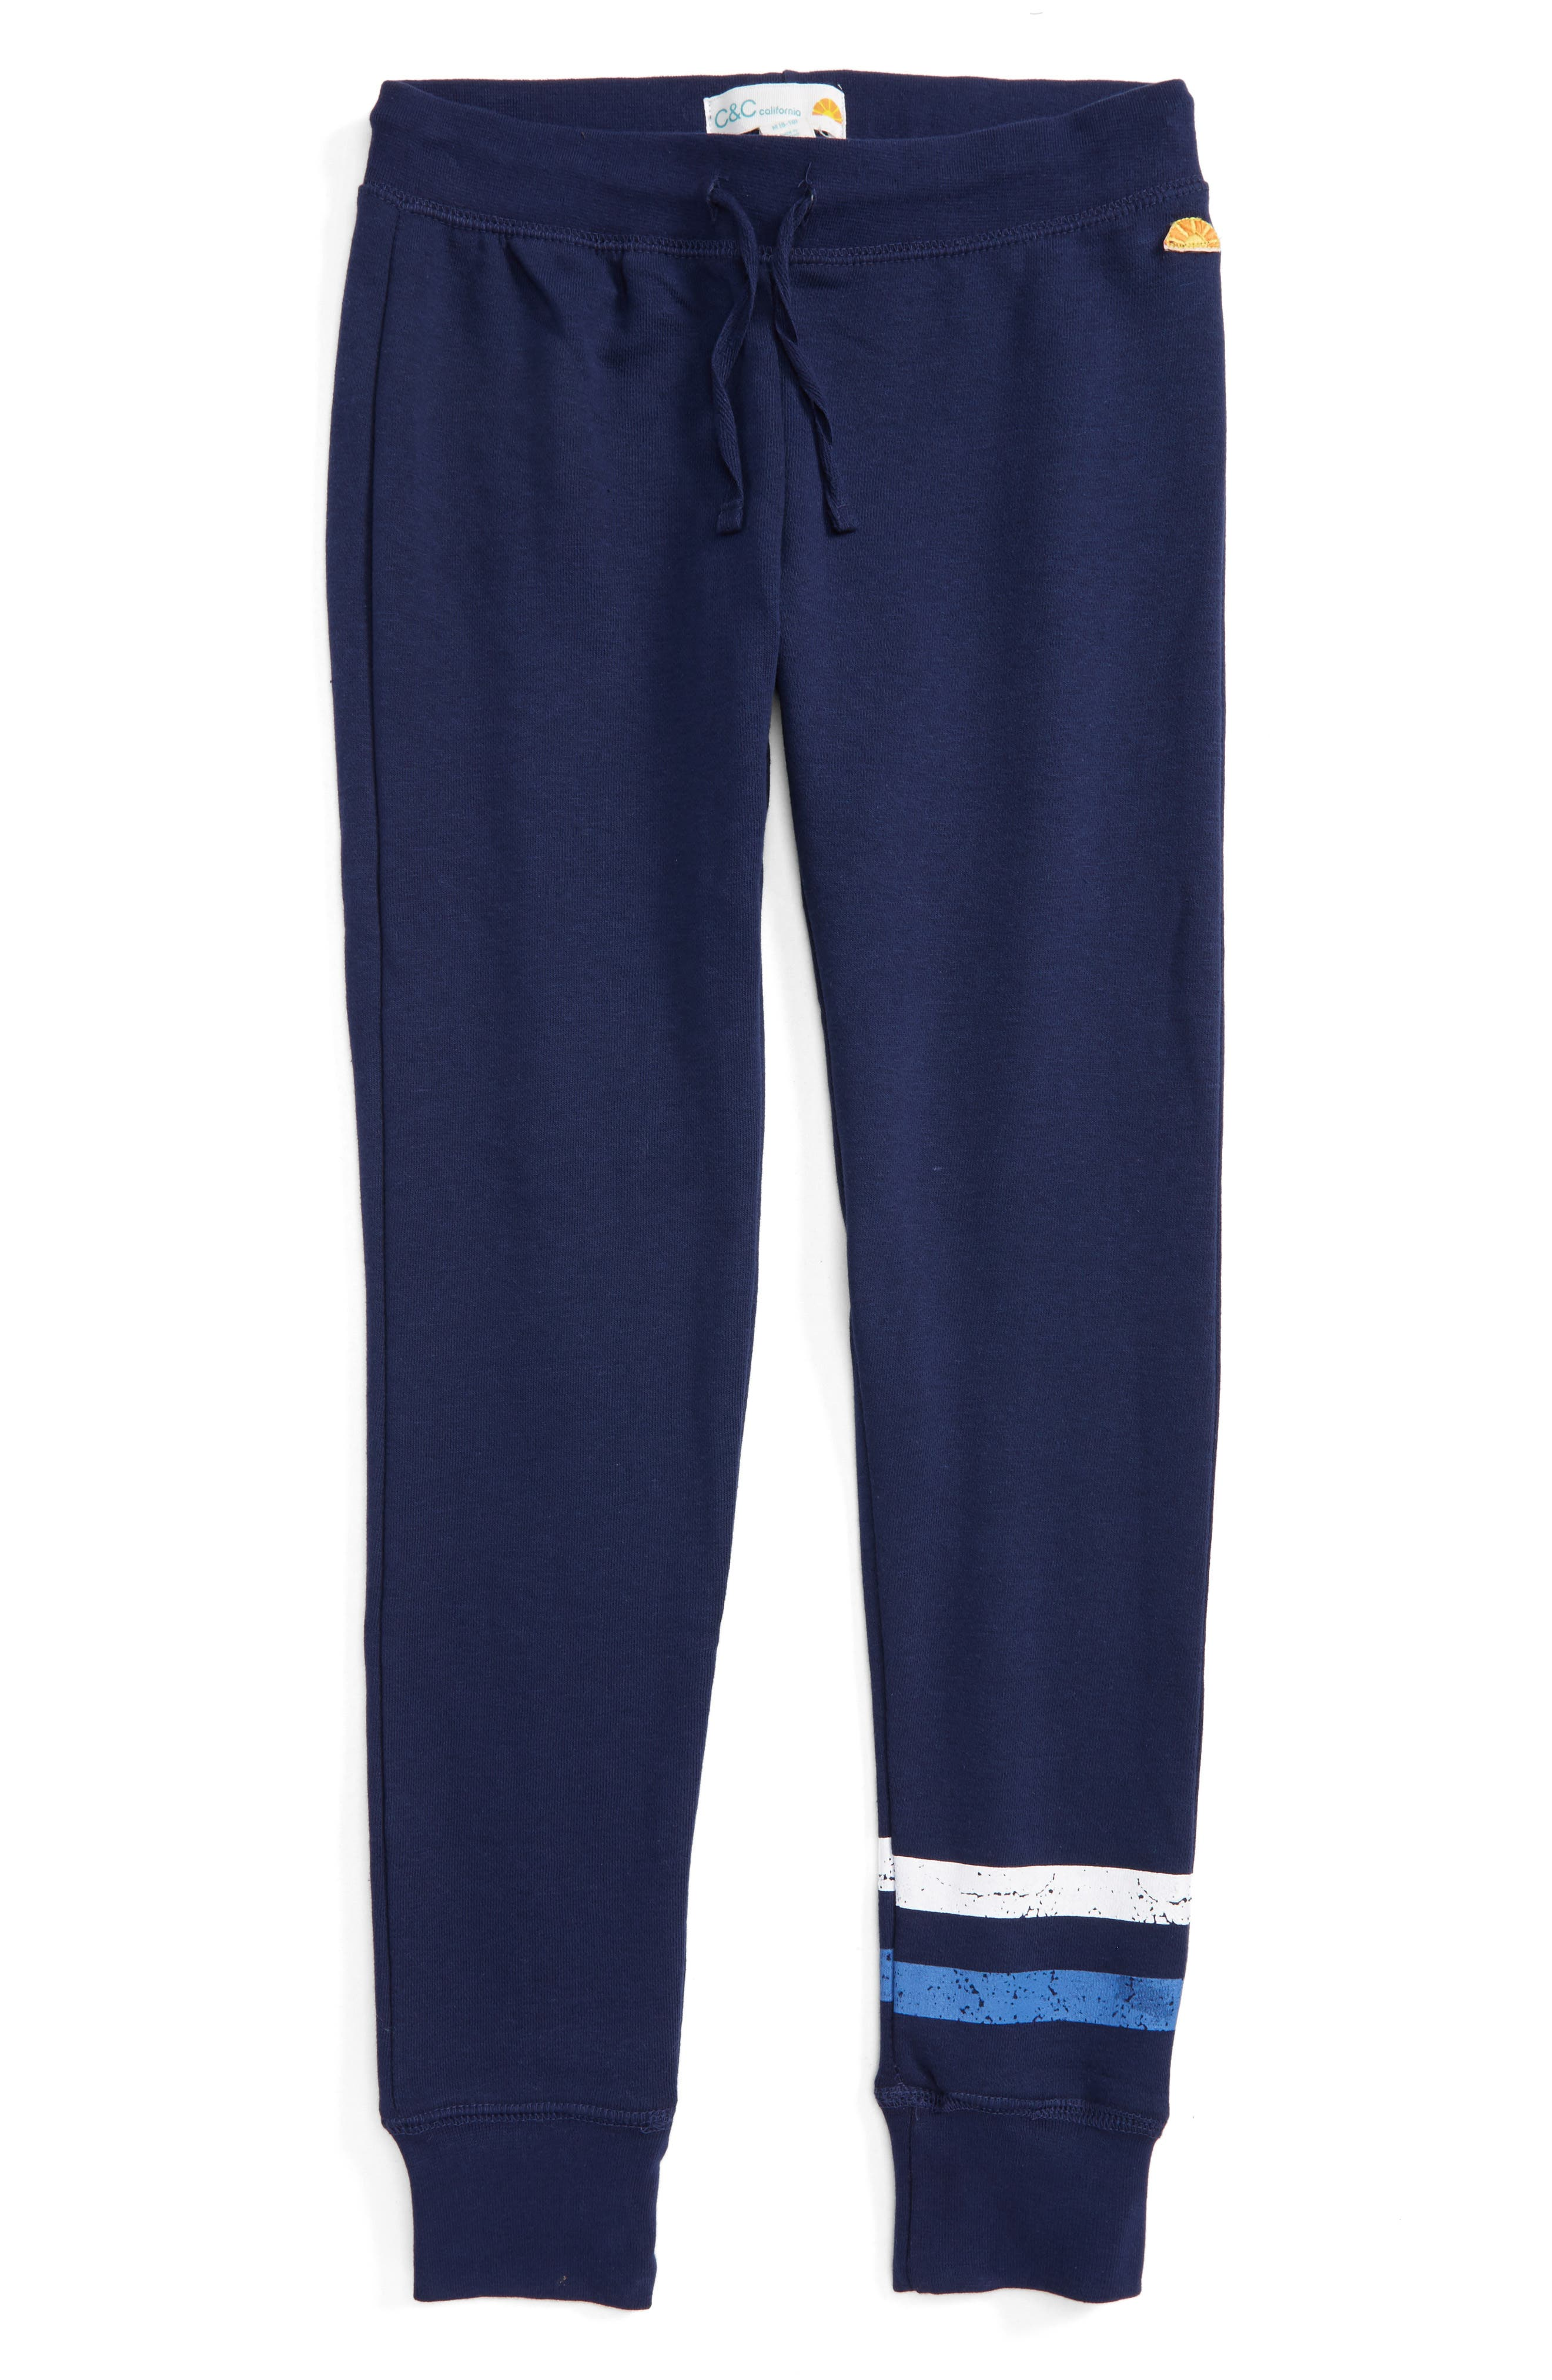 C & C California Jogger Pants (Big Girls)